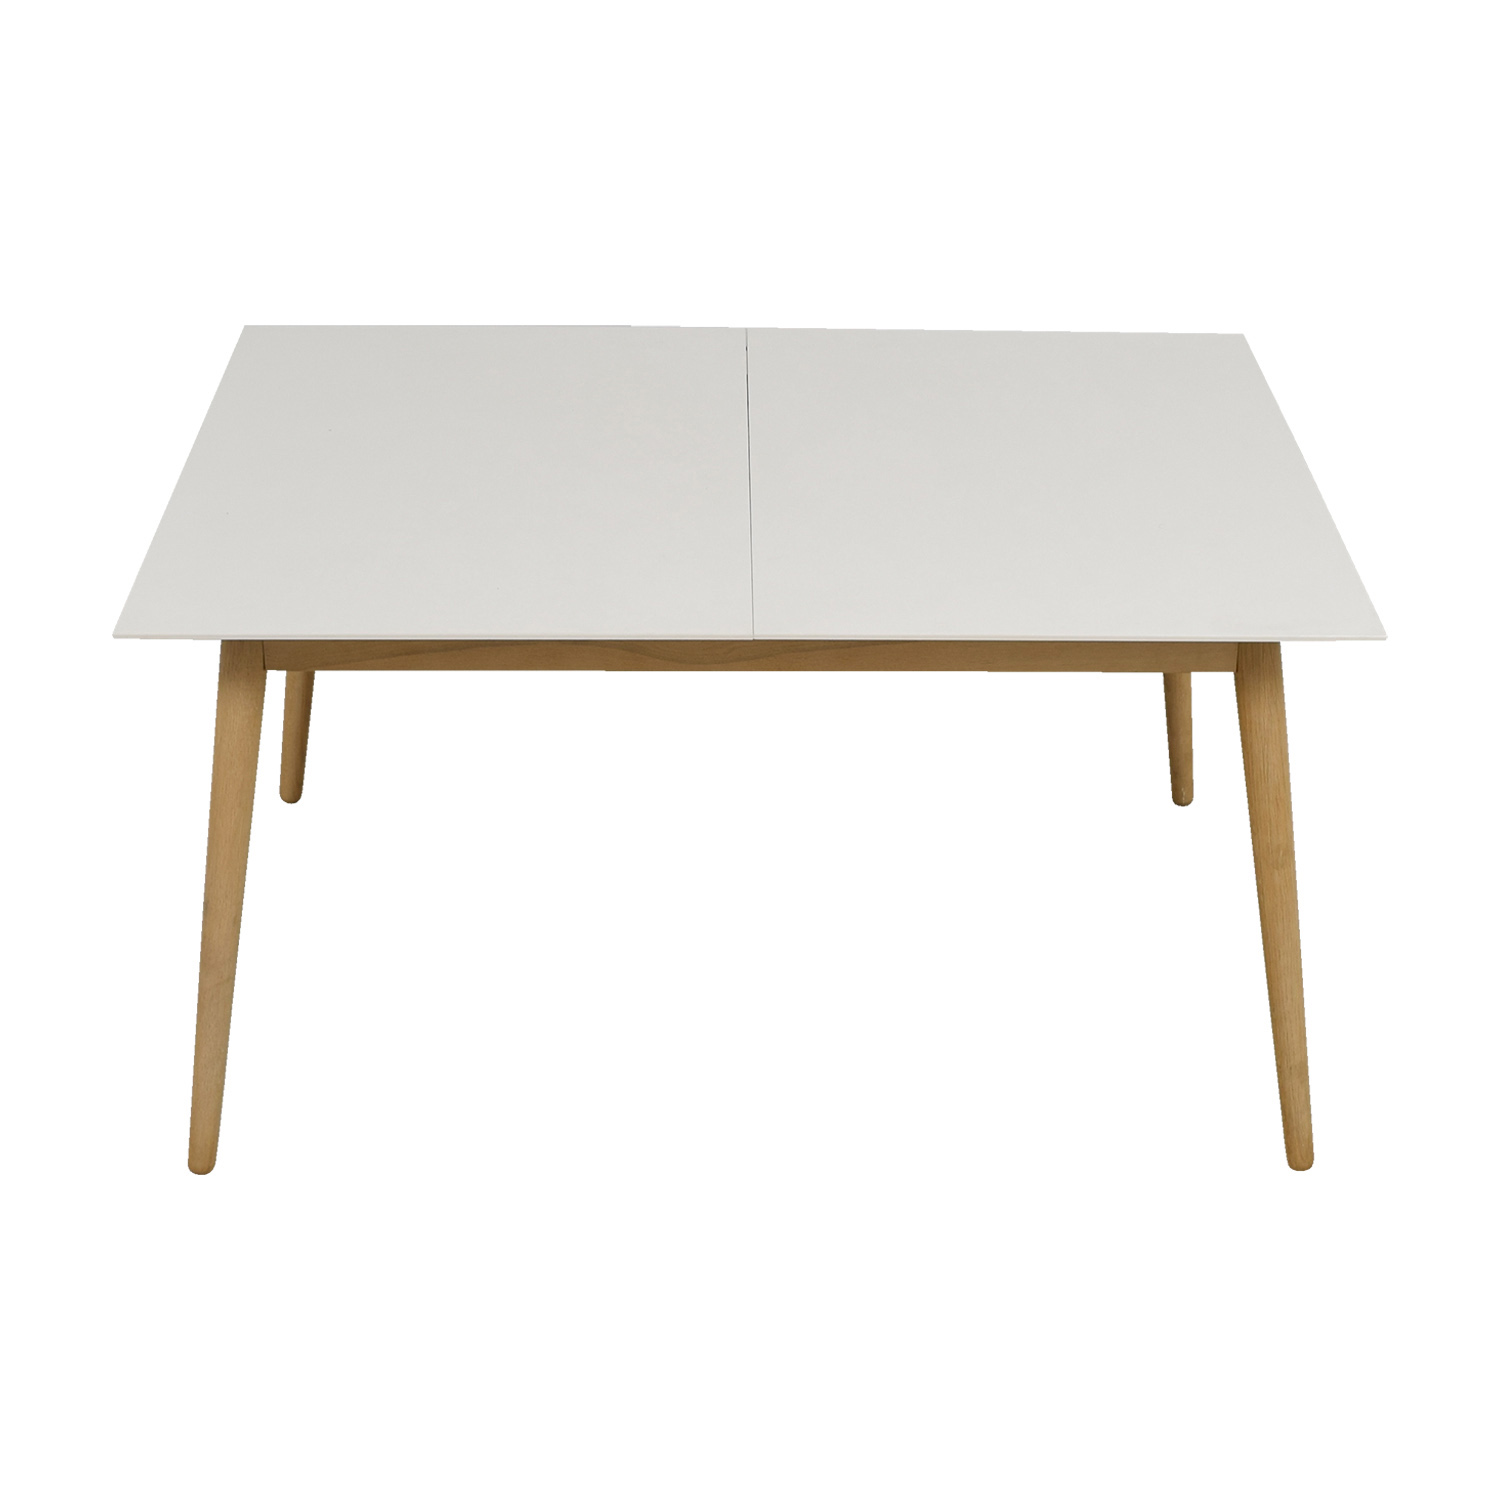 BoConcept BoConcept White and Natural Wood Extendable Table on sale